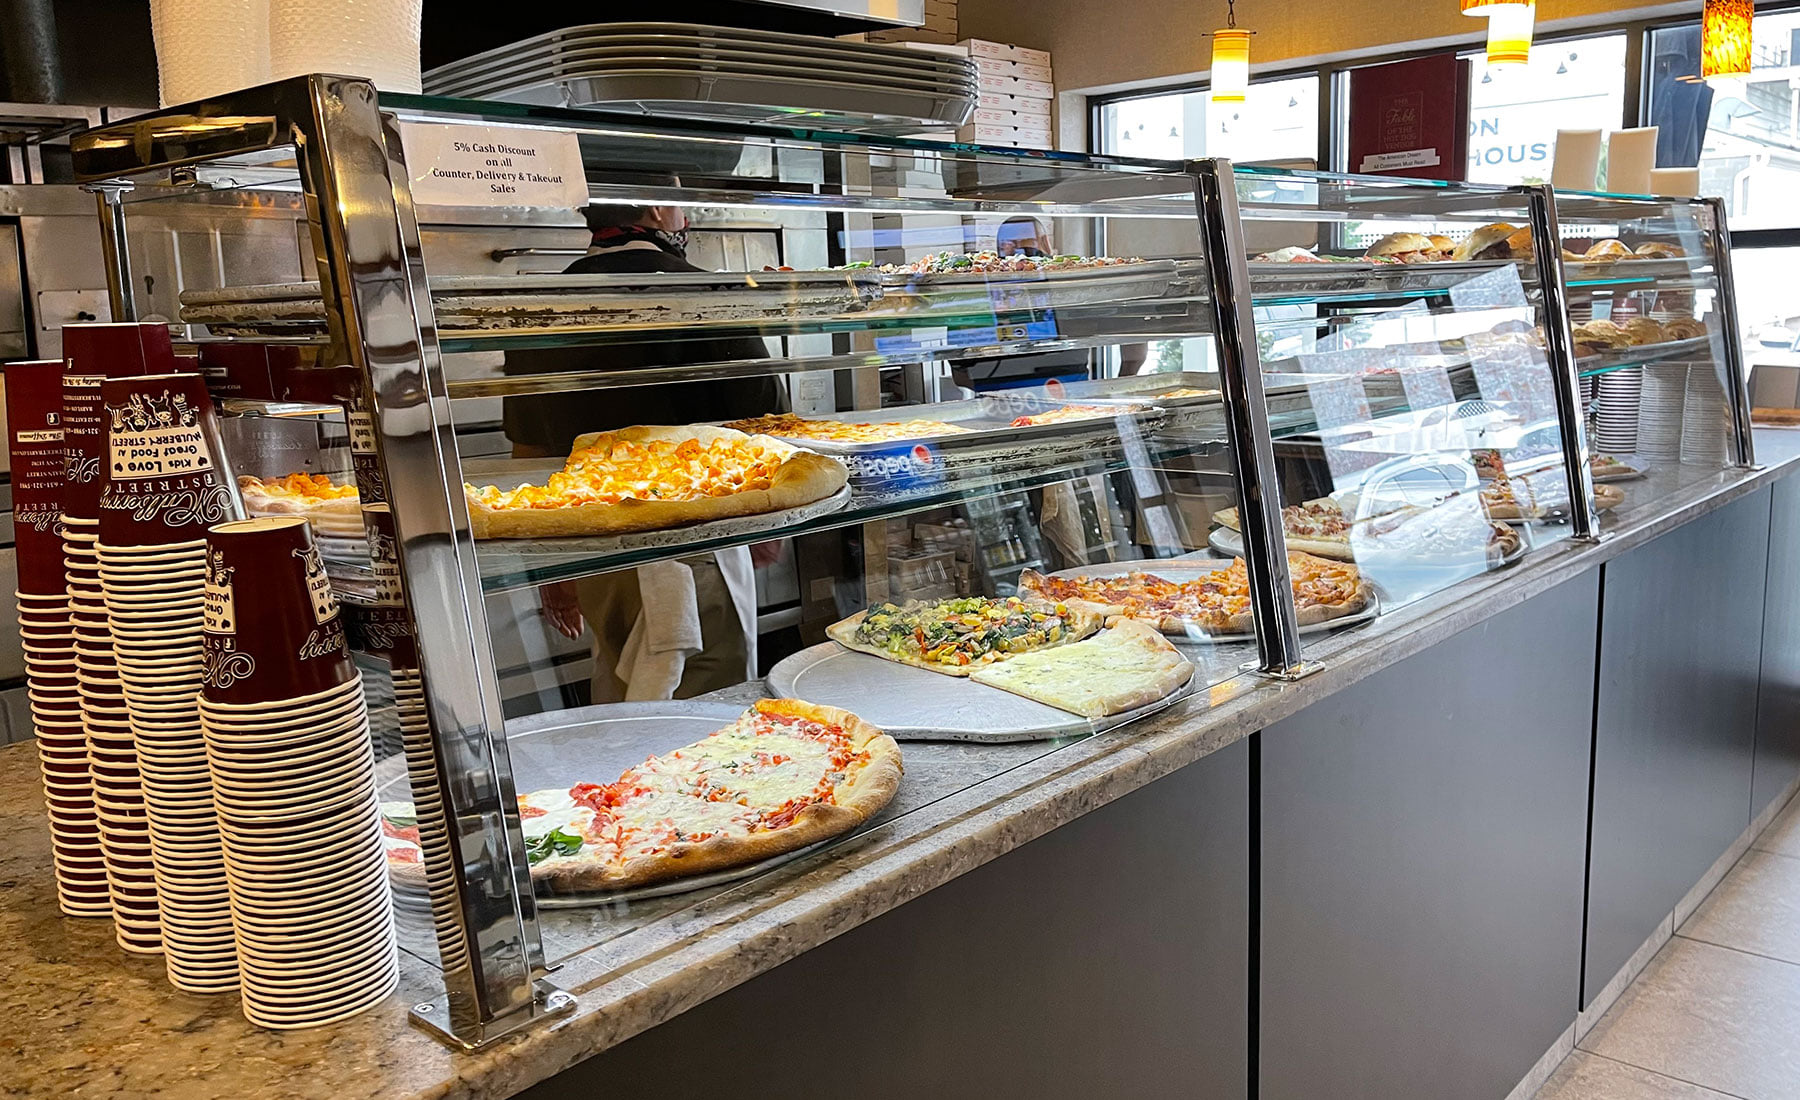 Polished stainless steel food shields with LED lights  - Mulberry Street, Babylon, NY